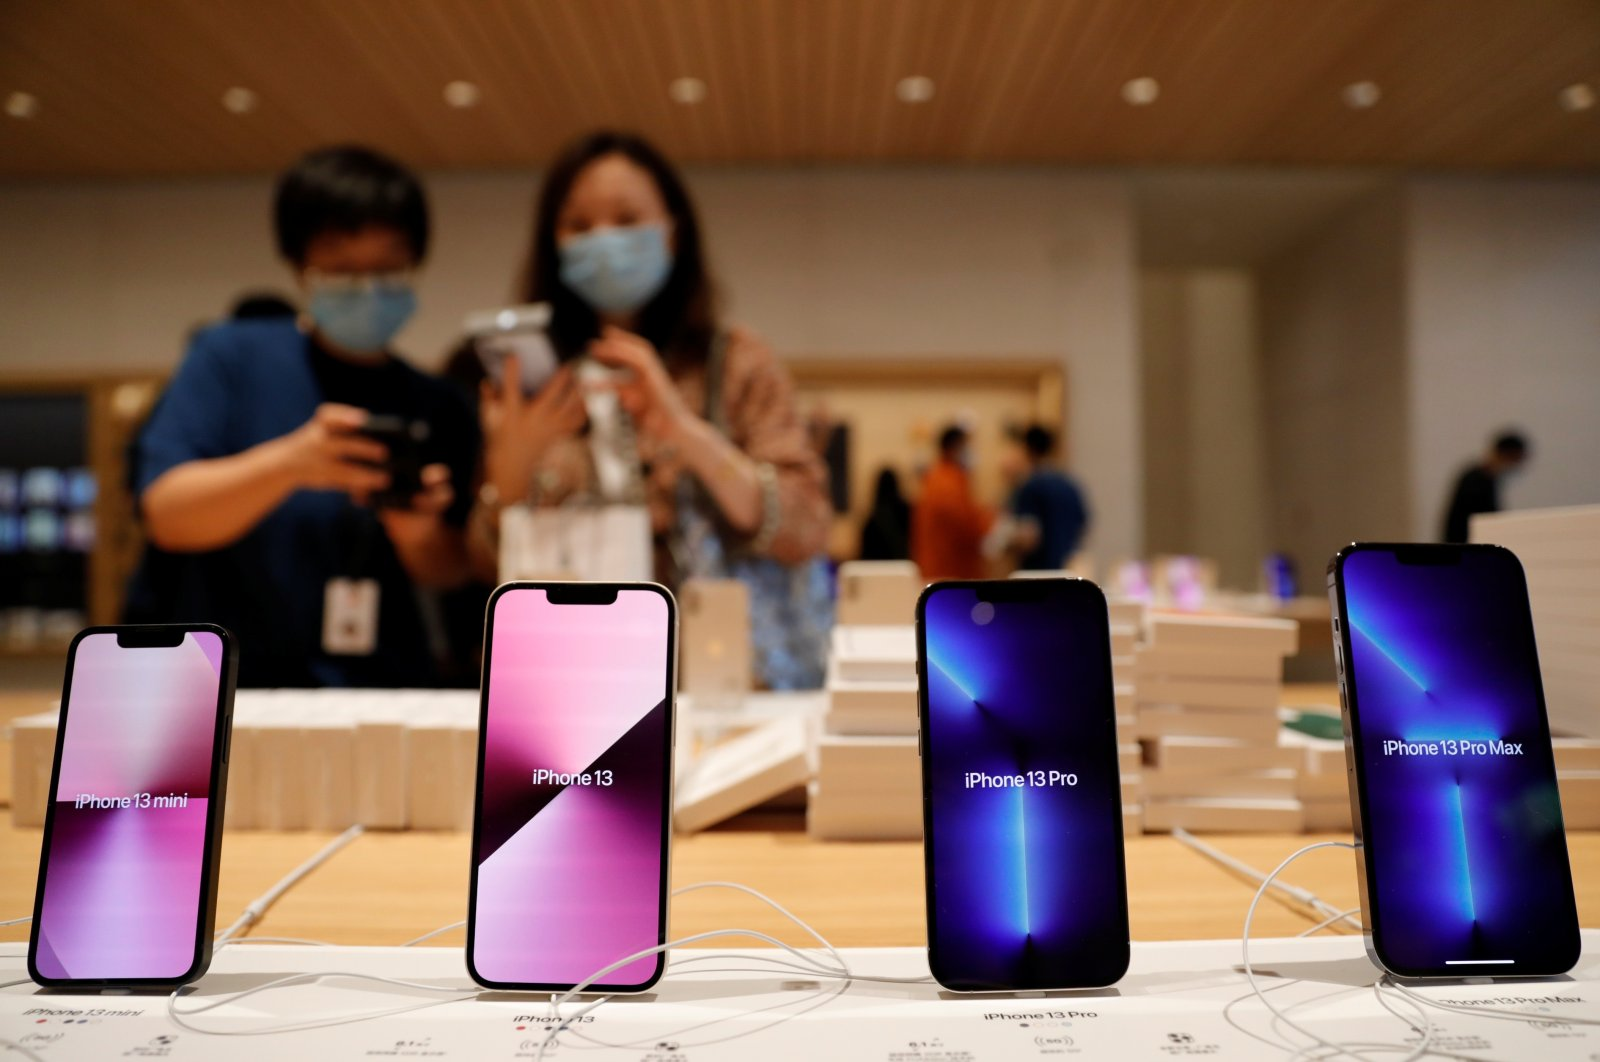 Apple iPhone 13 are pictured at an Apple Store on the day the new Apple iPhone 13 series goes on sale, in Beijing, China, Sept. 24, 2021. (Reuters Photo)